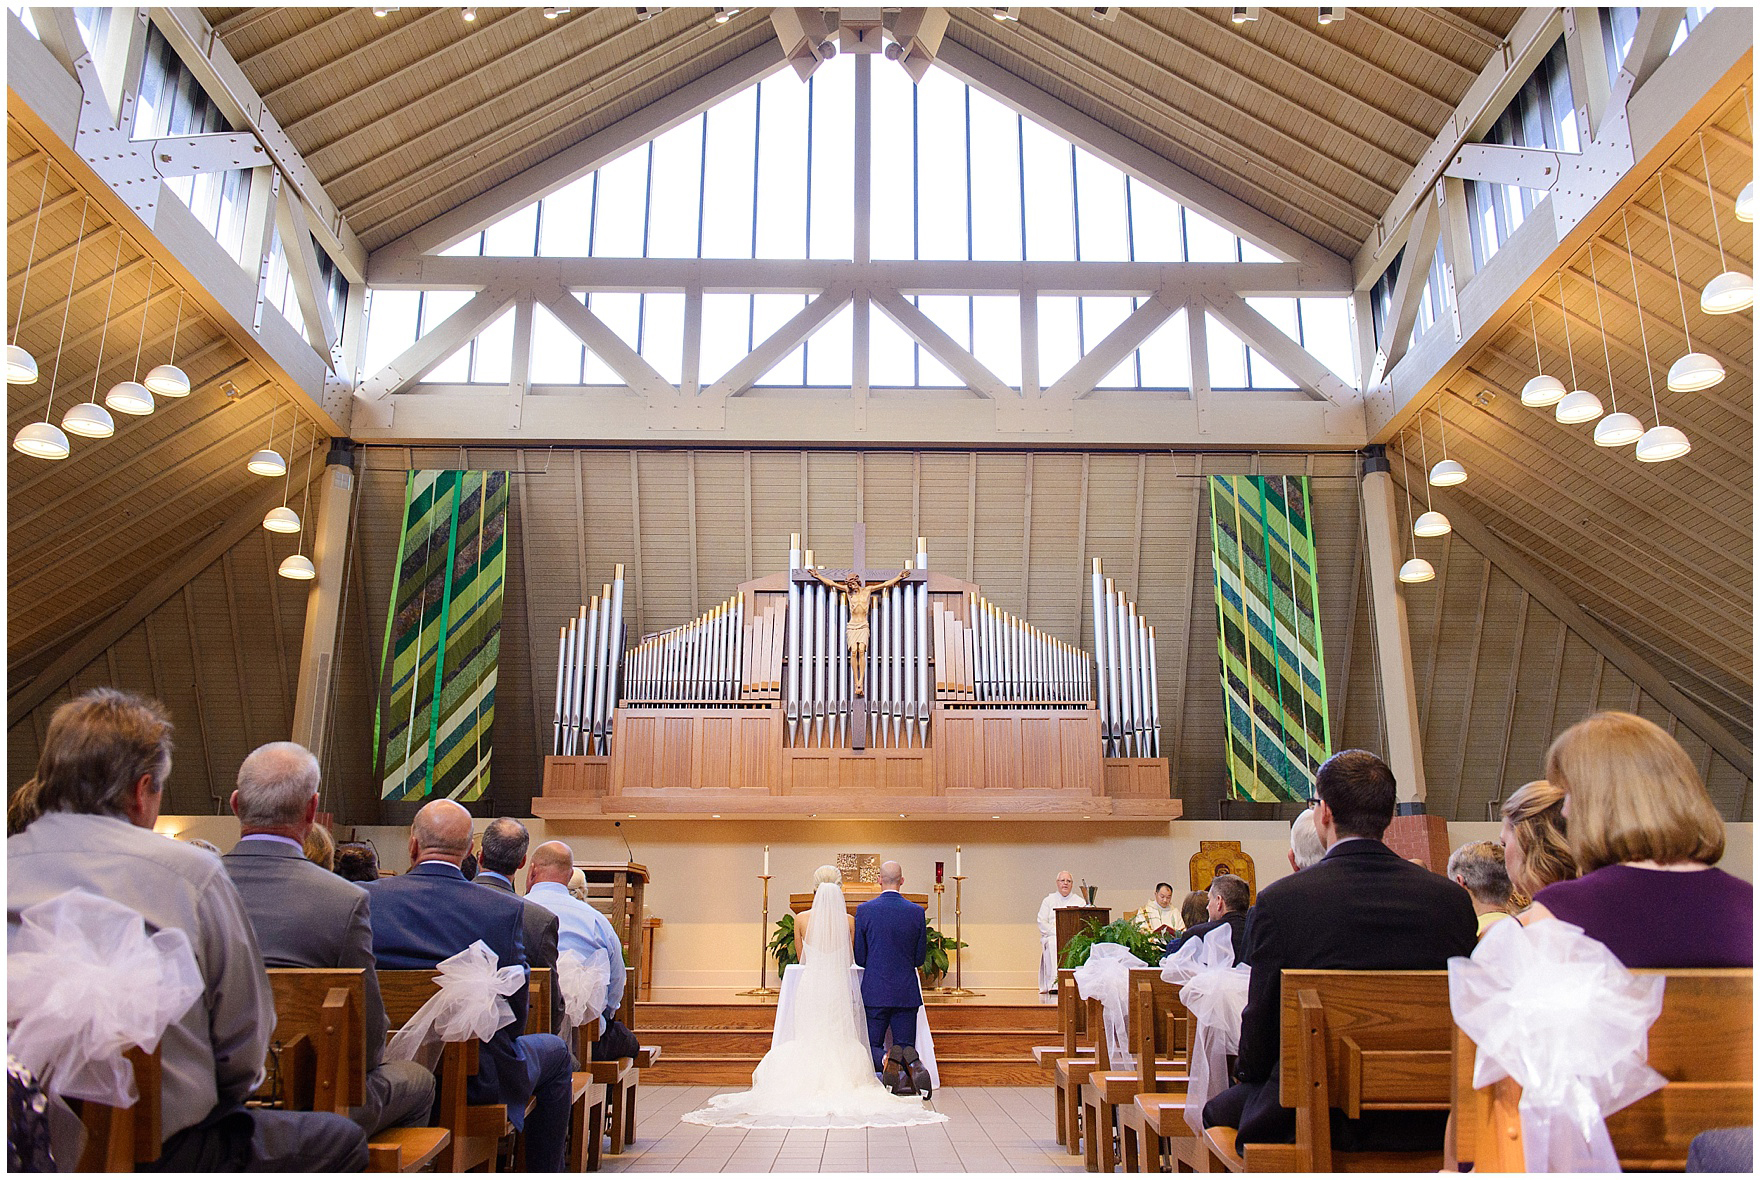 The bride and groom kneel during the ceremony for a St. Josephs Downers Grove Pinstripes Oak Brook, Illinois wedding.